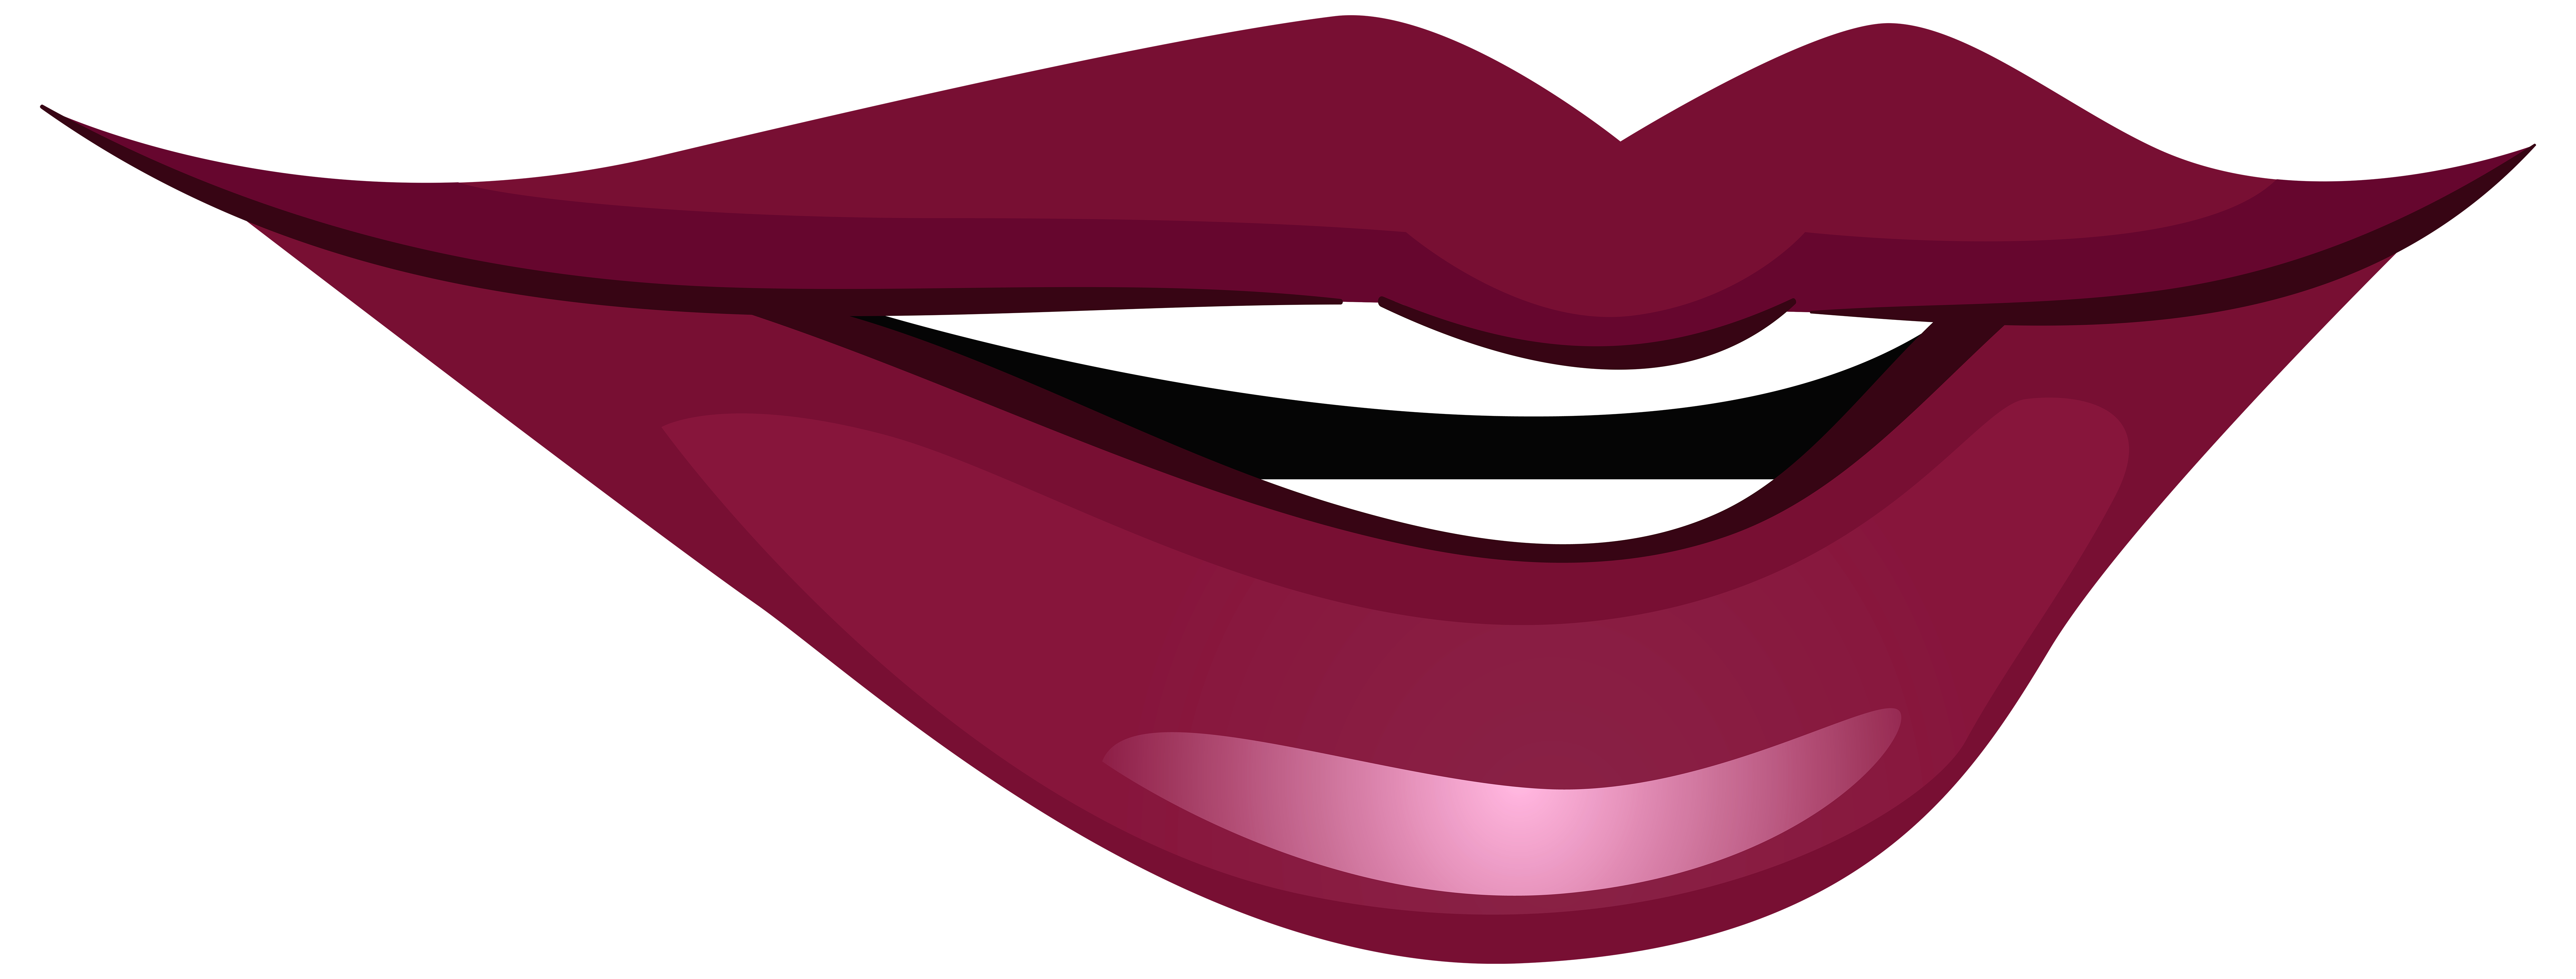 Fish lips clipart graphic royalty free stock Smiling Mouth PNG Clip Art - Best WEB Clipart graphic royalty free stock